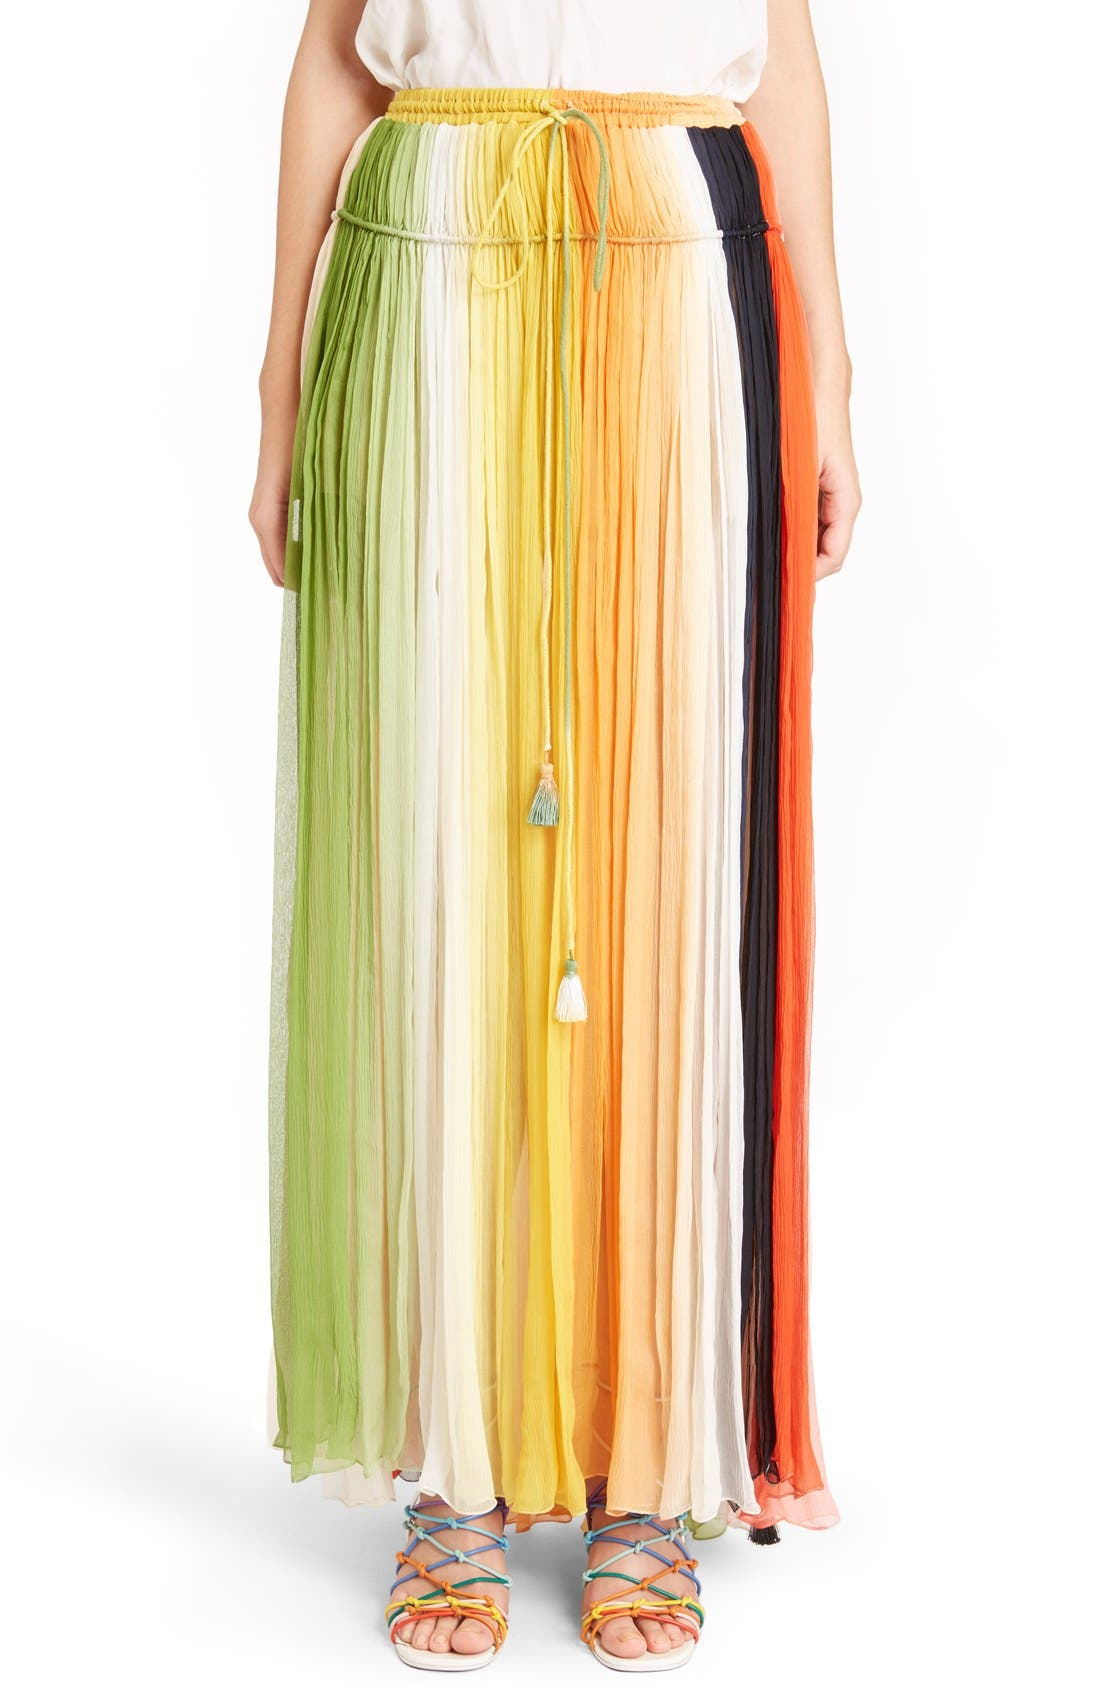 Main Image - Chloé Stripe Pleated Silk Skirt with Tassels